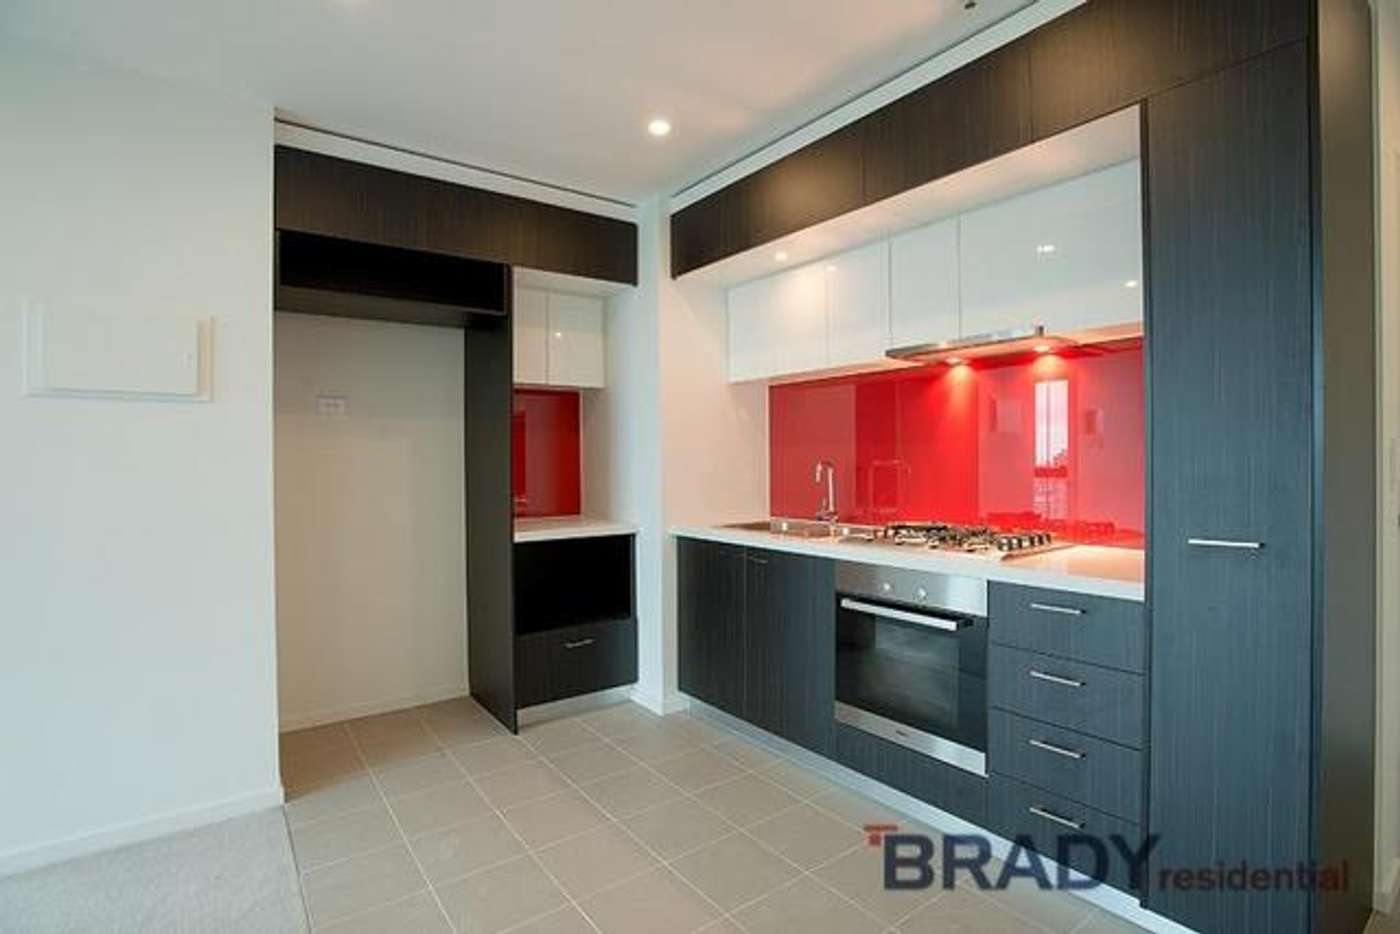 Main view of Homely apartment listing, 3301/8 Sutherland Street, Melbourne VIC 3000